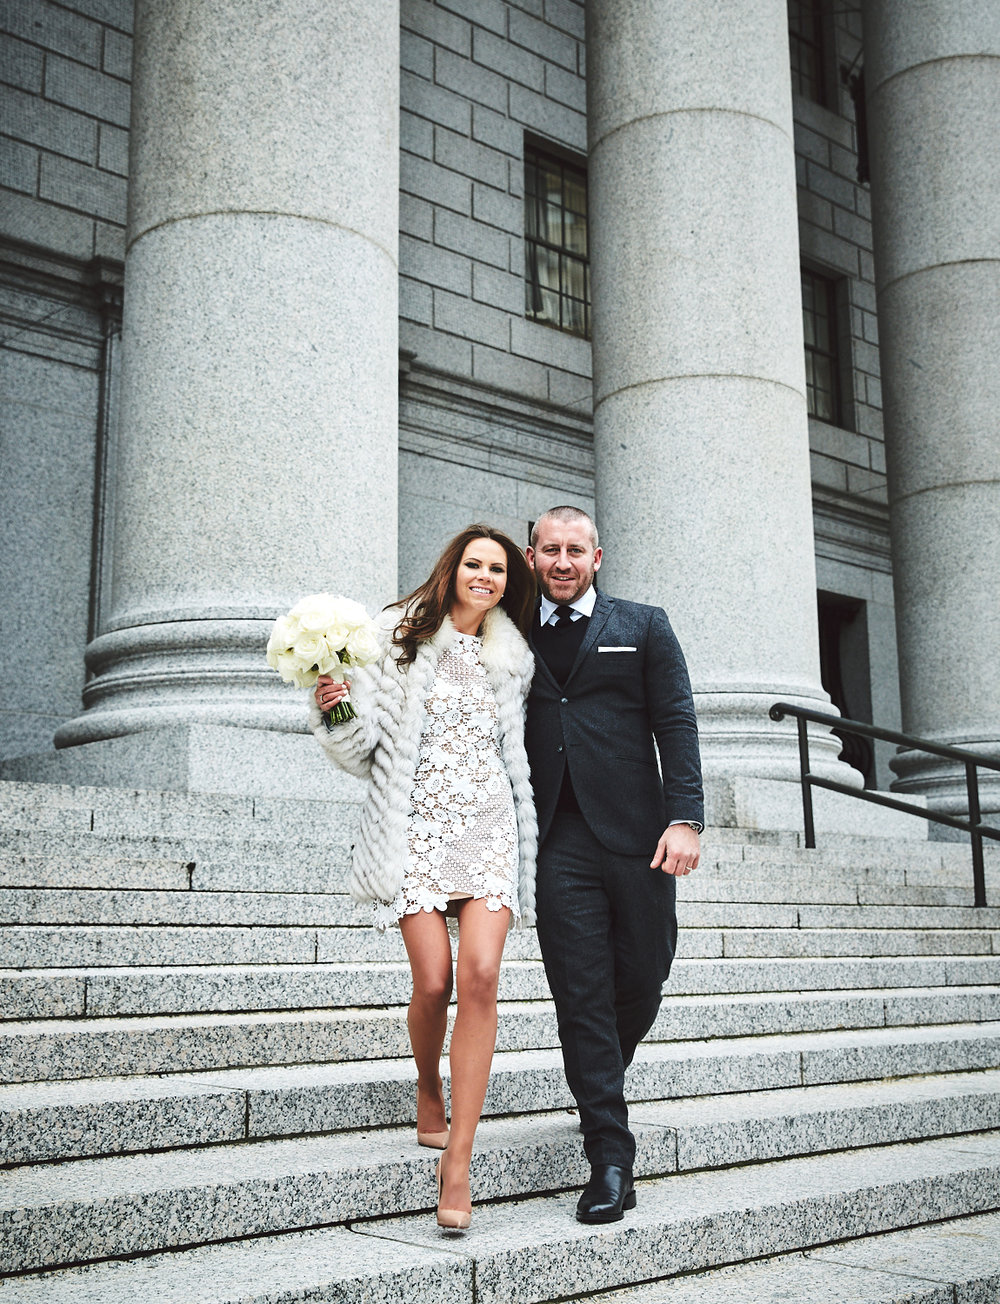 161229_NYCElopemenlPhotographer_CityHallWedding_By_BriJohnsonWeddings_0040.jpg